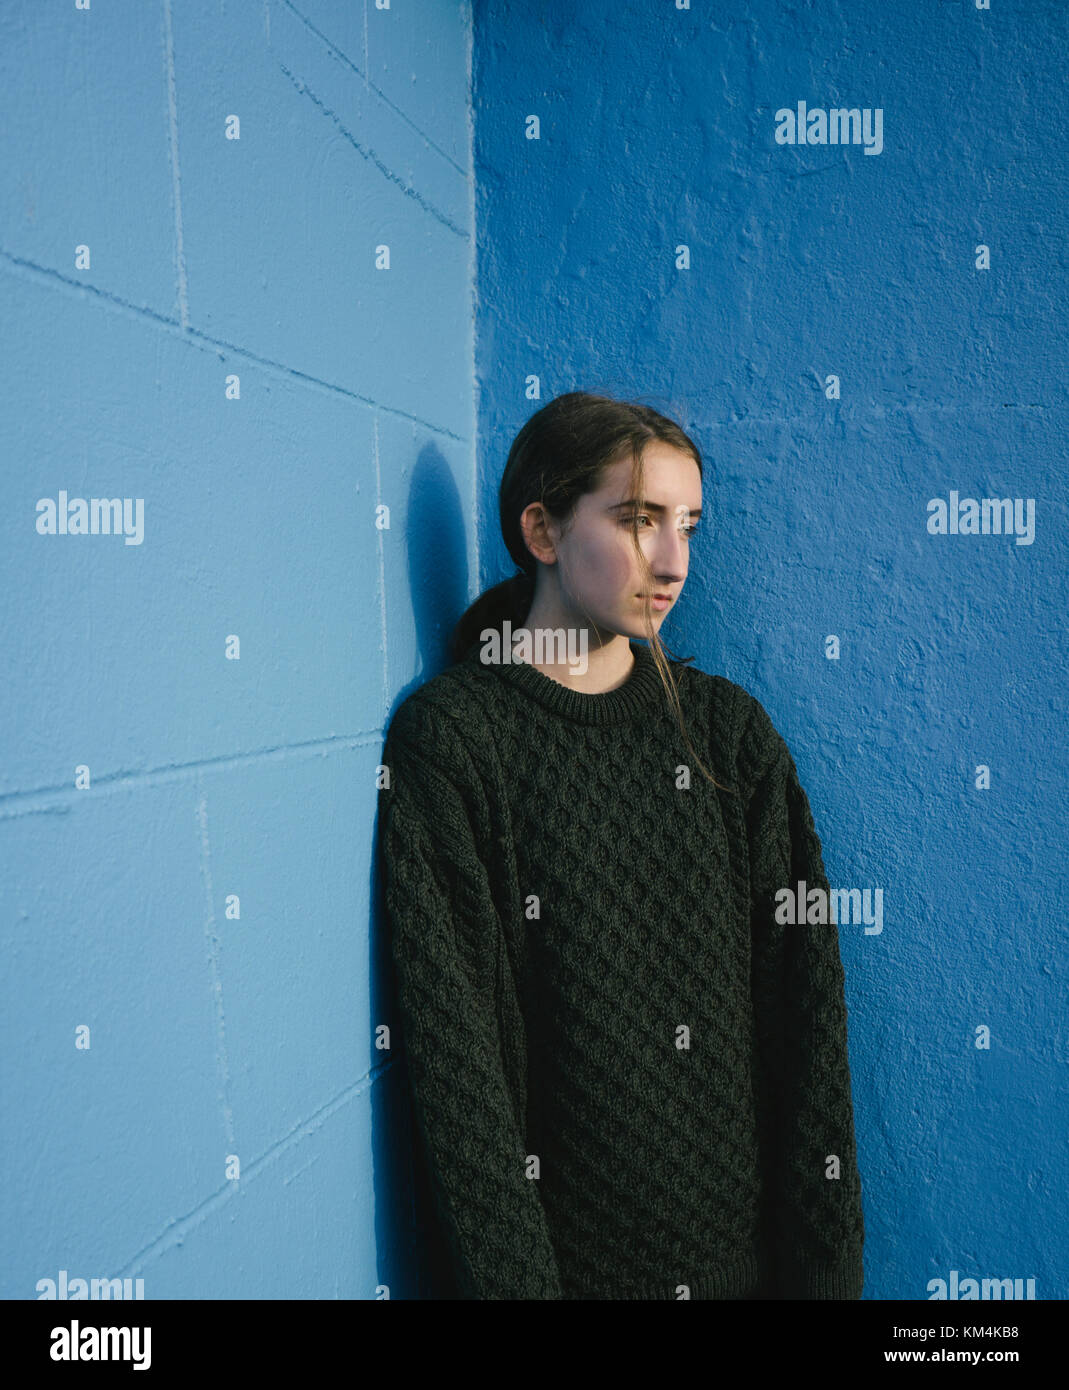 Portrait of teenage girl with brown hair in ponytail wearing black knitted jumper, leaning against blue wall. - Stock Image